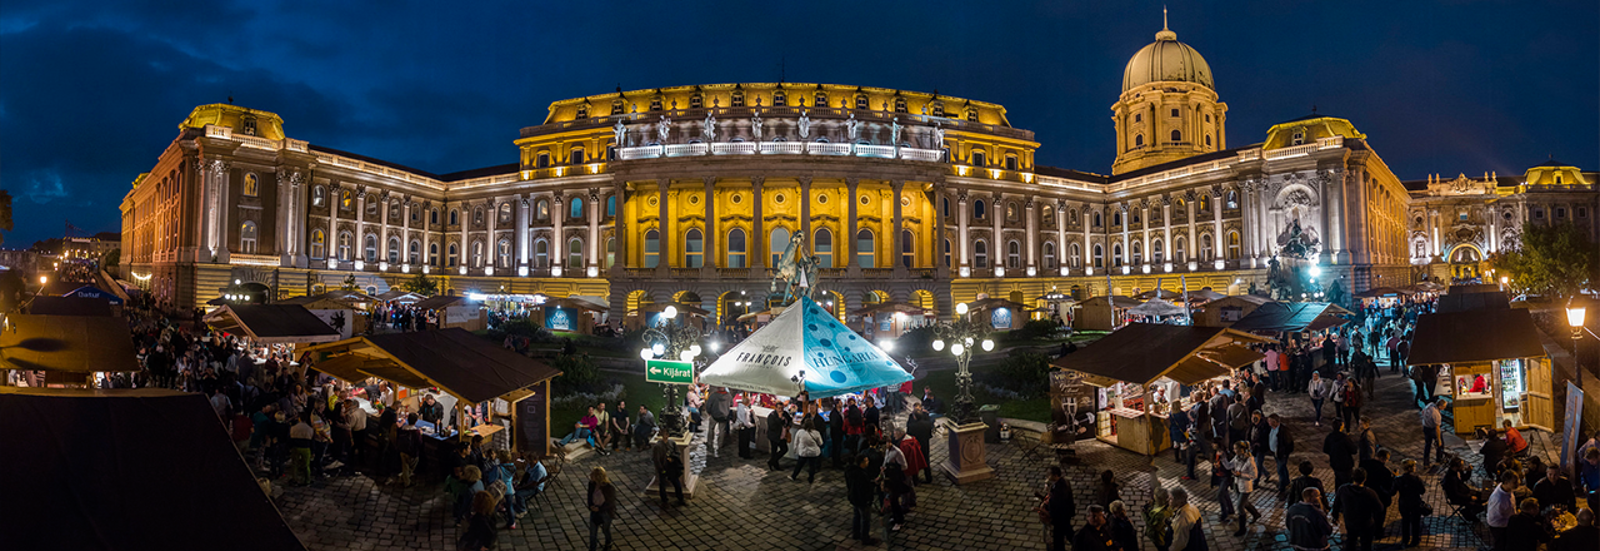 International Wine Festival In Buda Castle, 8 - 11 September